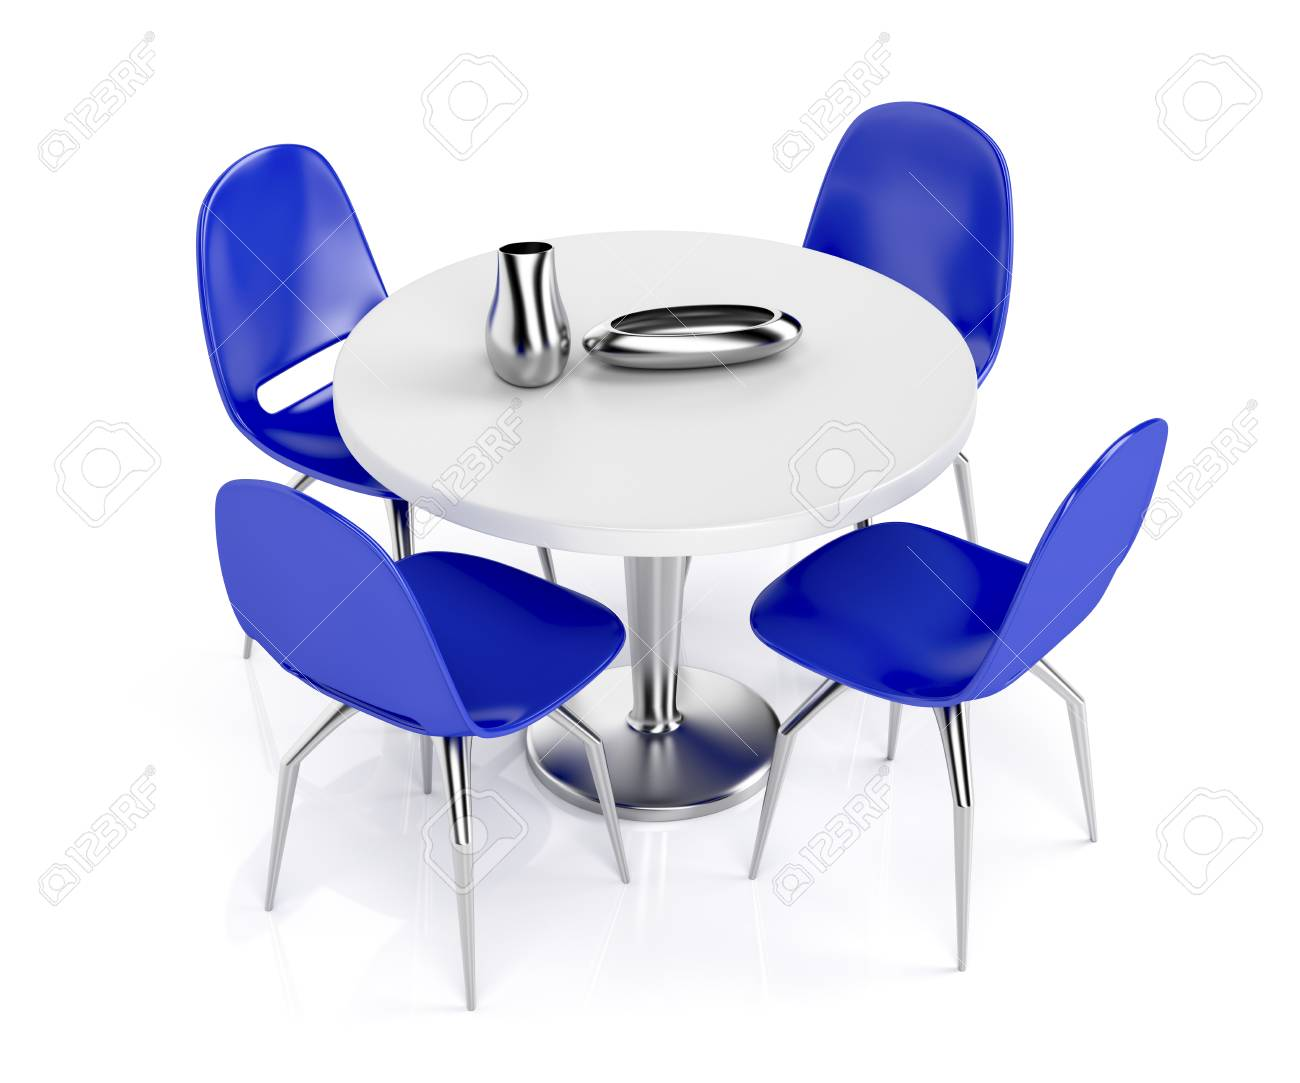 Round Dining Table And Blue Plastic Chairs On White Background Stock Photo Picture And Royalty Free Image Image 38377417